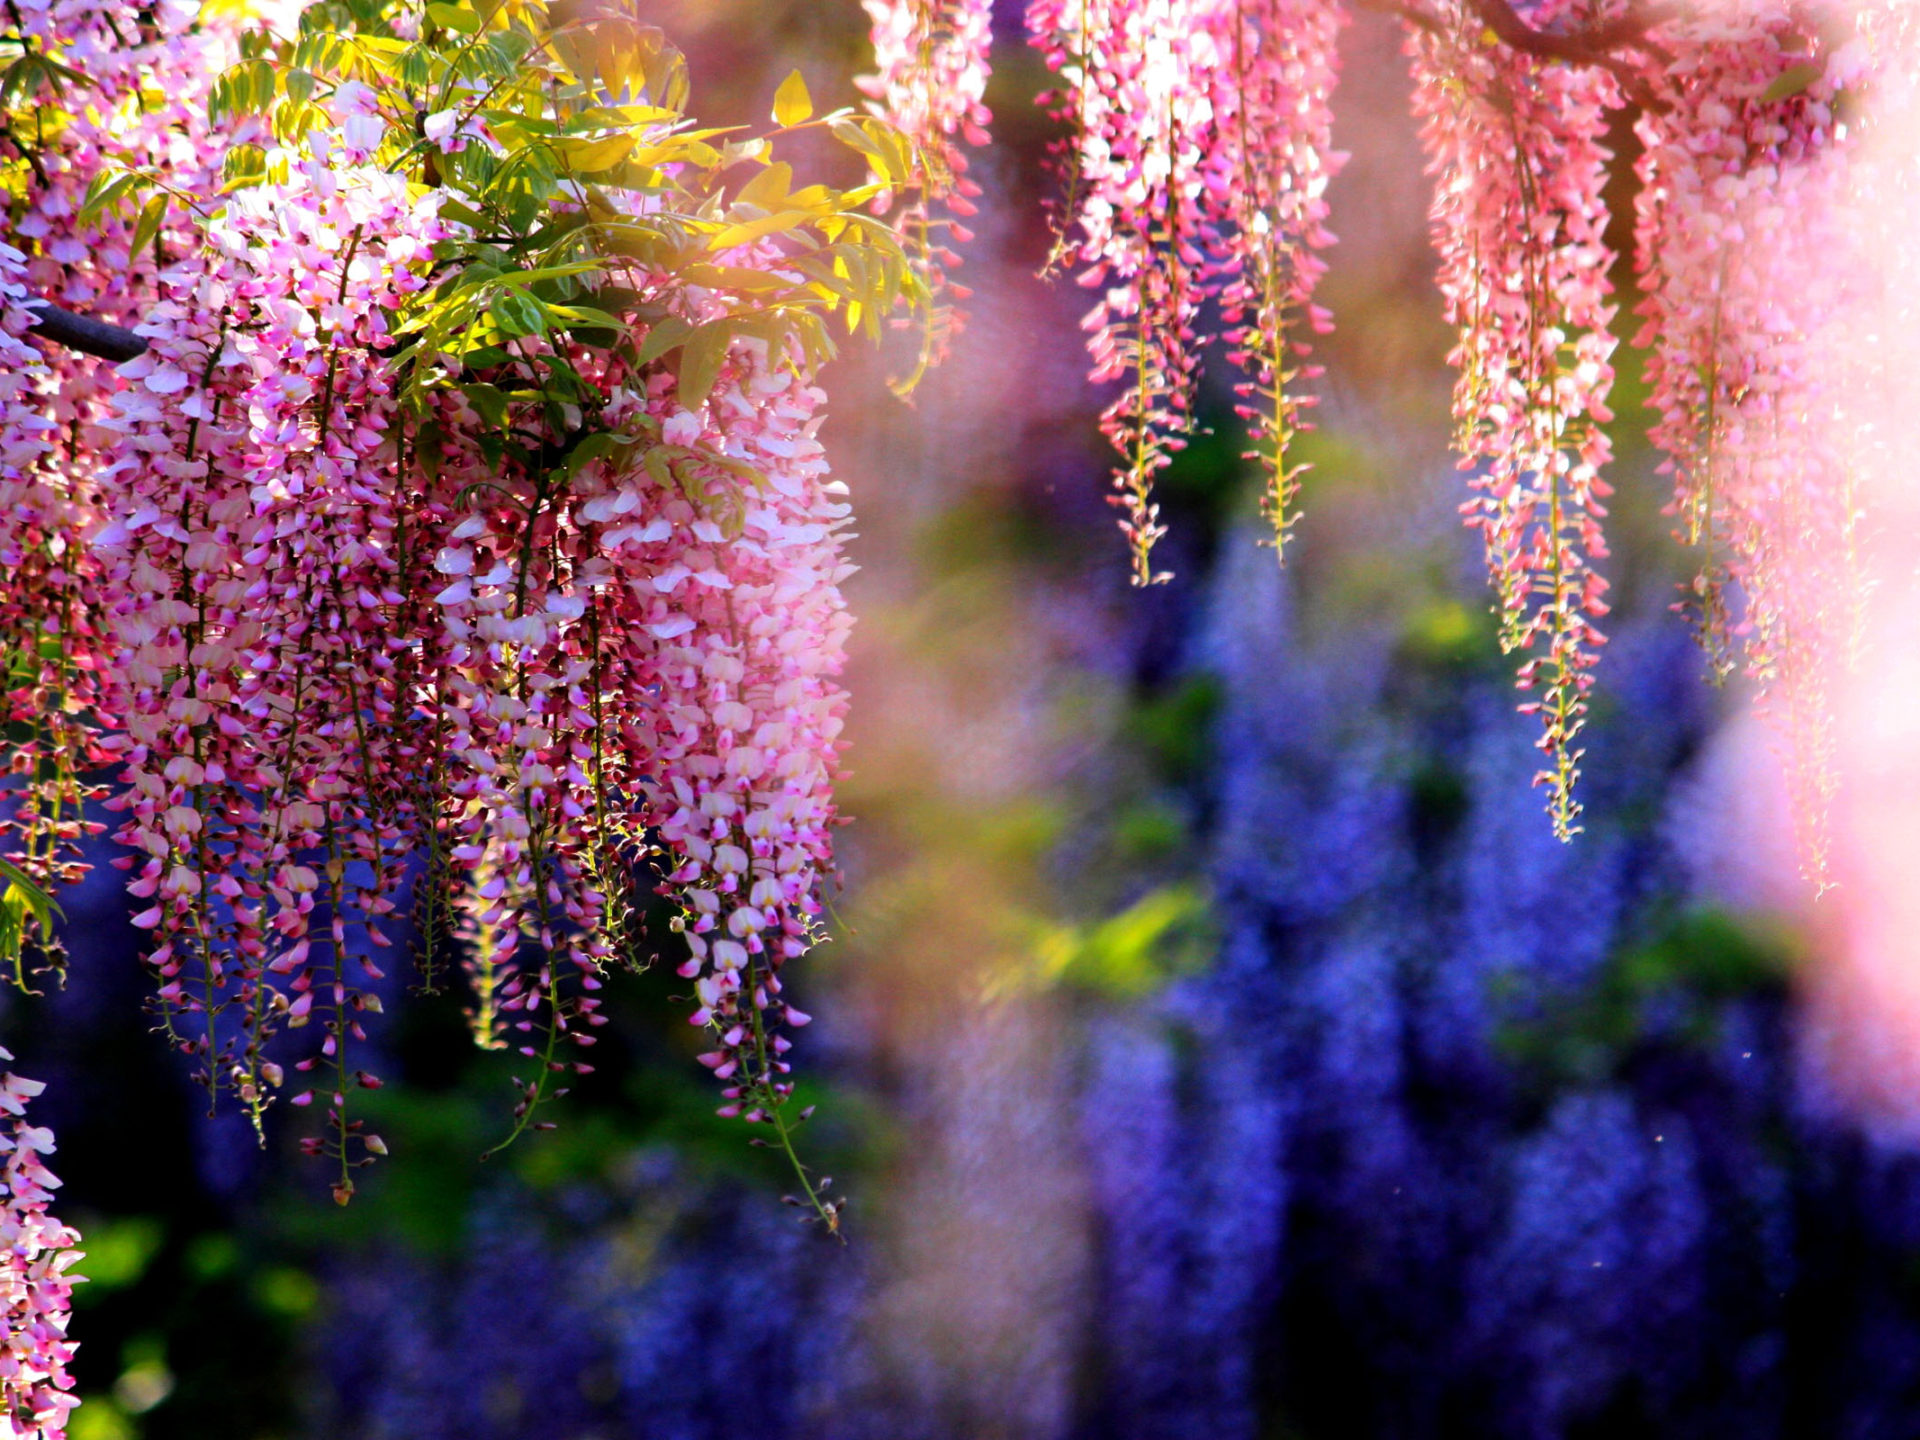 White Iphone 5 Wallpaper Hd Pink Wisteria Tree With Beautiful Flowers Seeds Of All